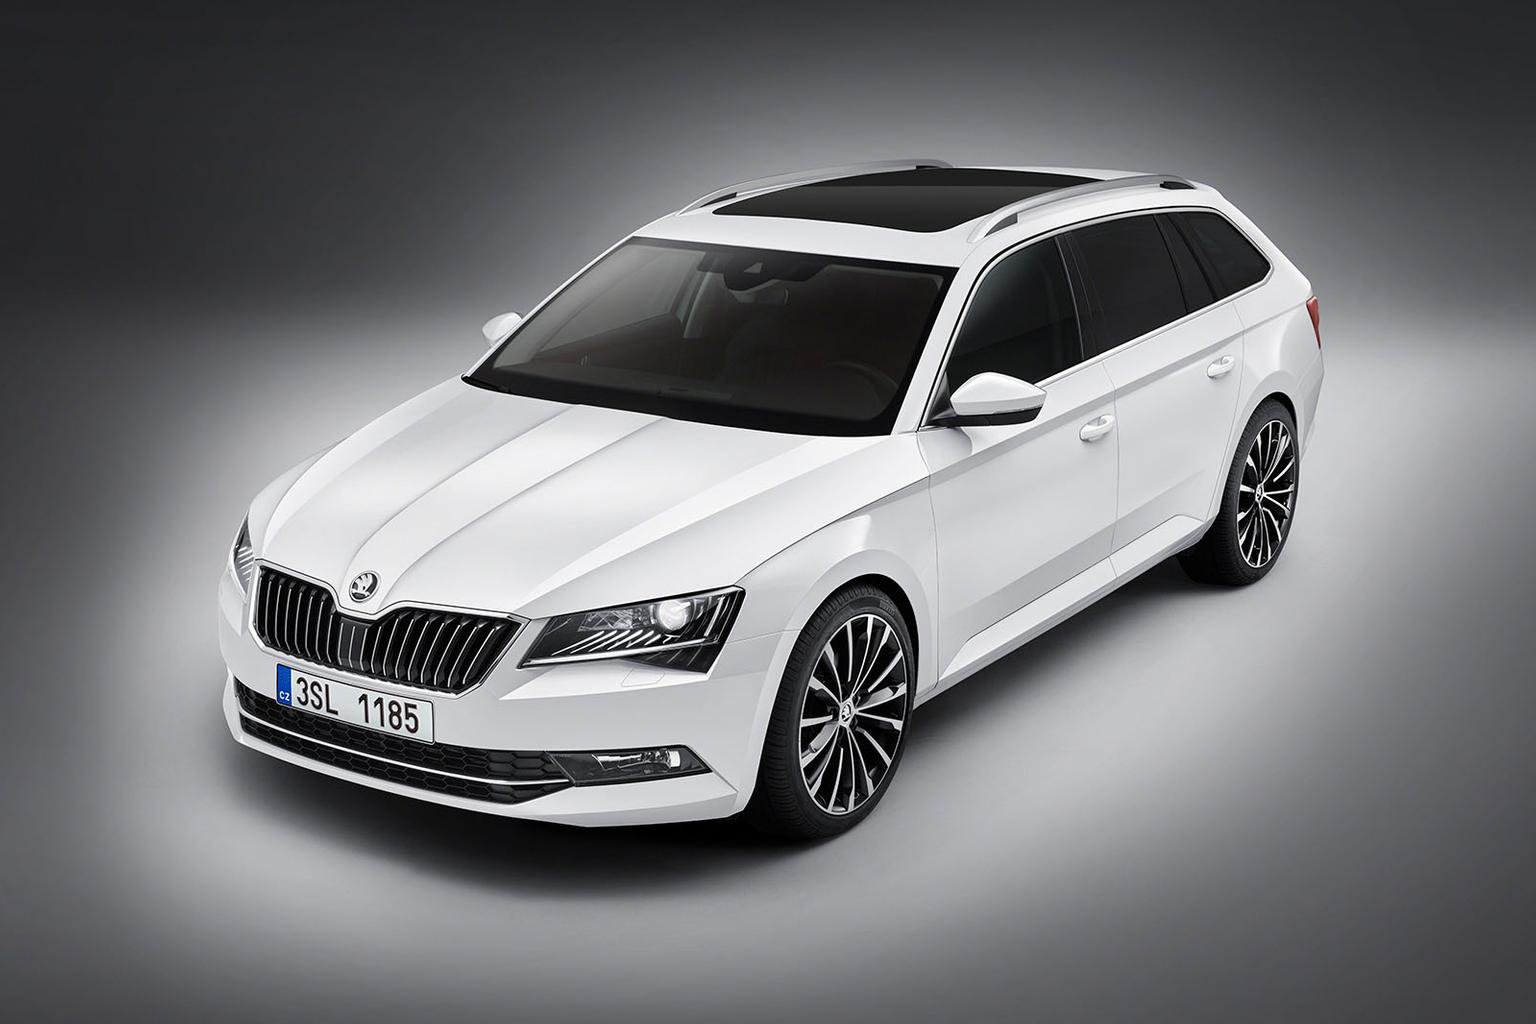 2015 Skoda Superb estate - pictures, specification and on-sale date